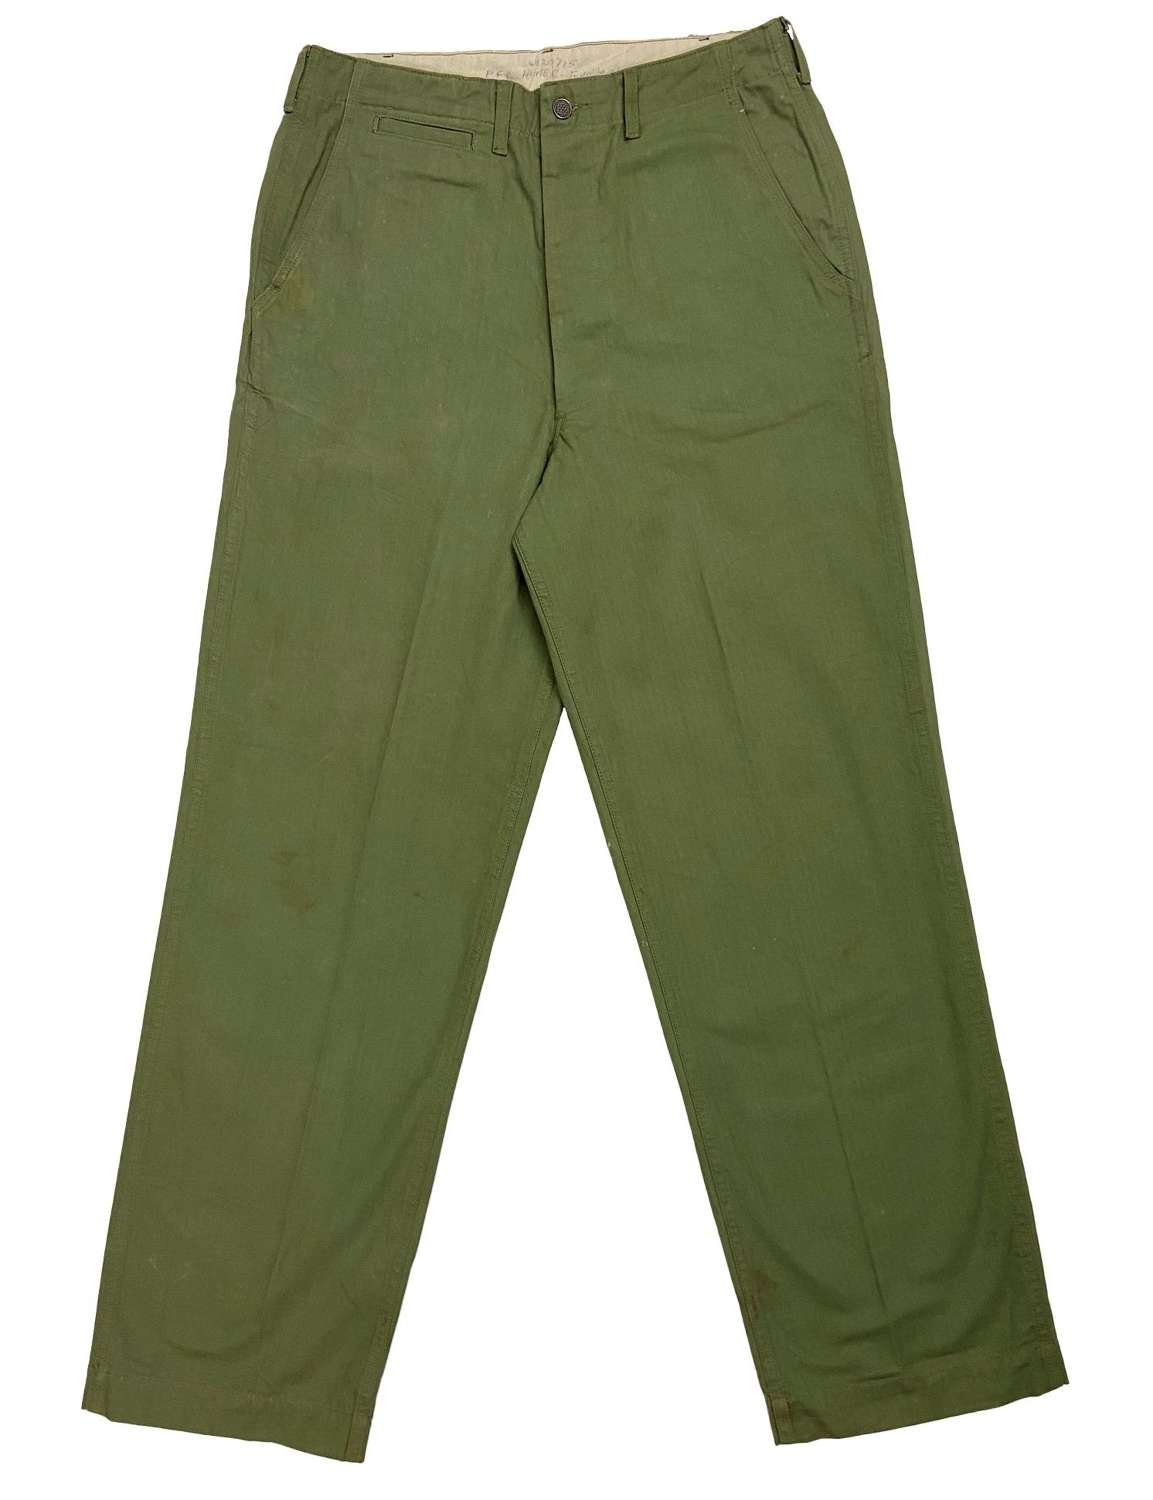 Original WW2 US Army M1942 HBT Trousers - Size 34x34 1/2